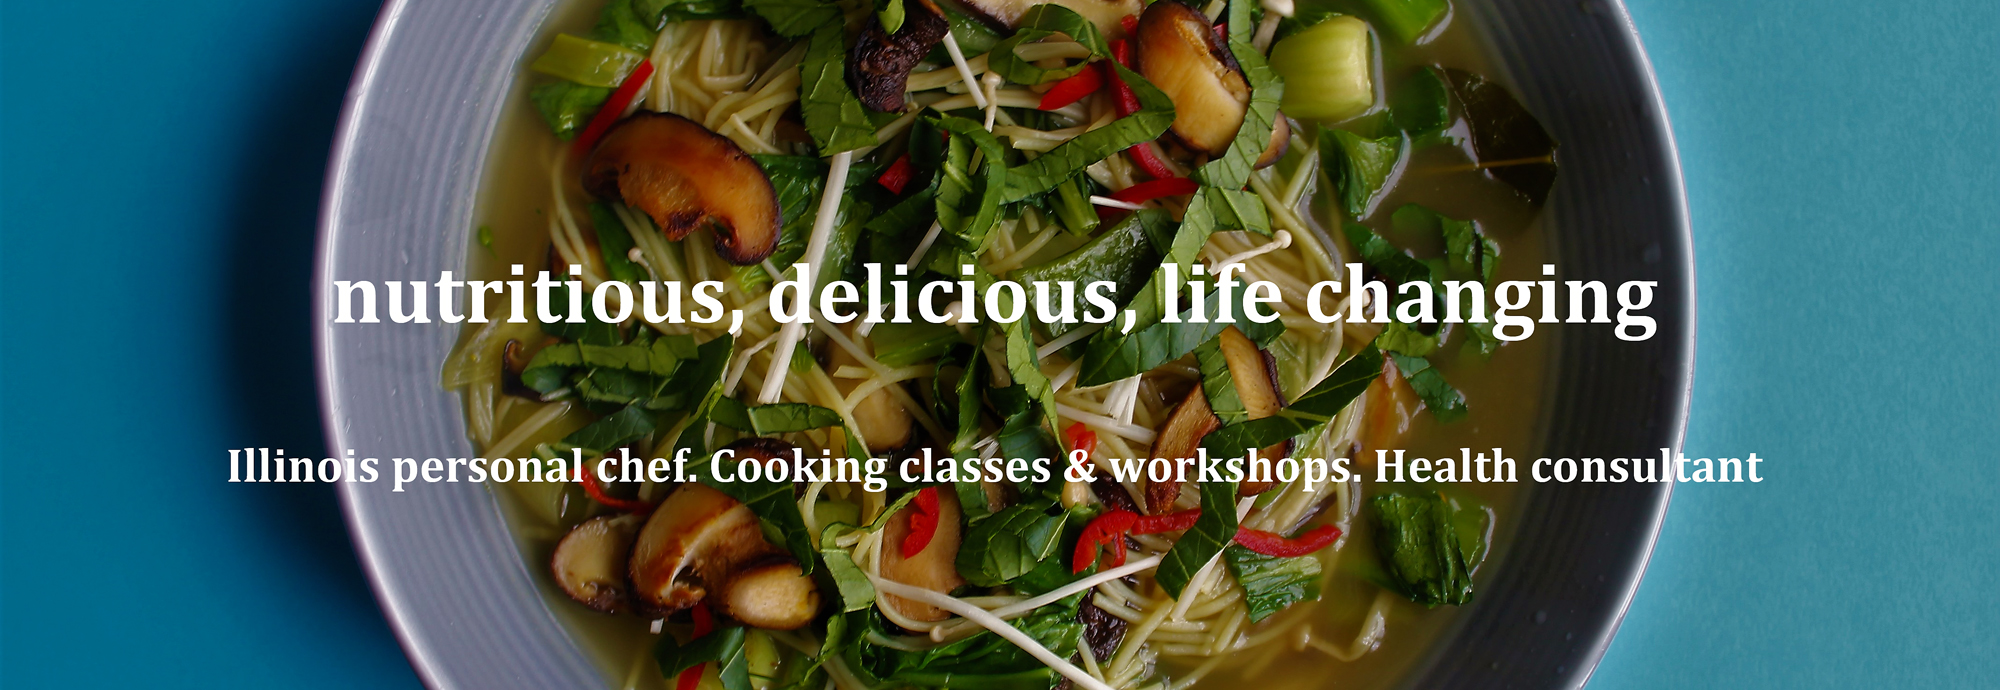 Healthy Vegan Cooking Classes Chicago Illinois